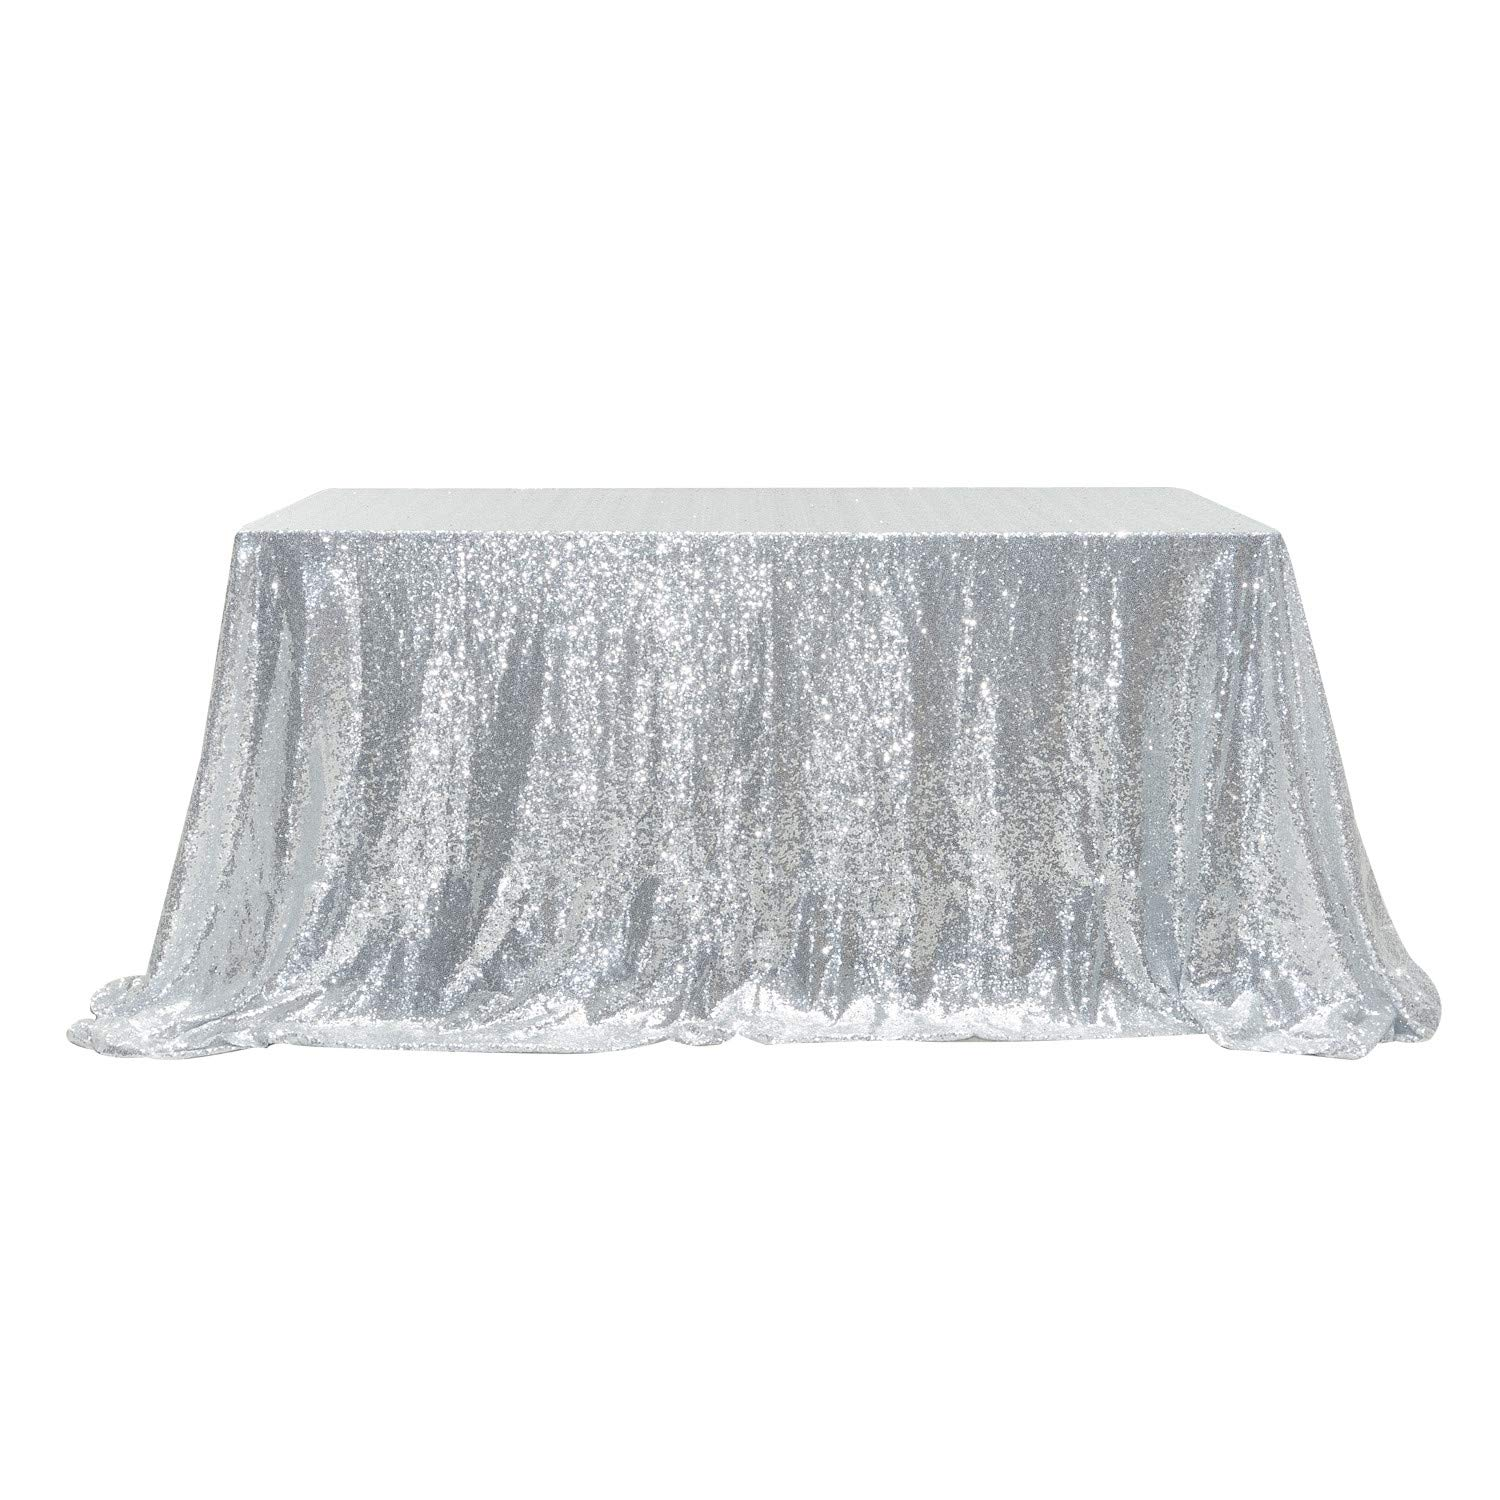 PartyDelight Sequin Tablecloth, Rectangular, 60''x120'', Silver by PartyDelight